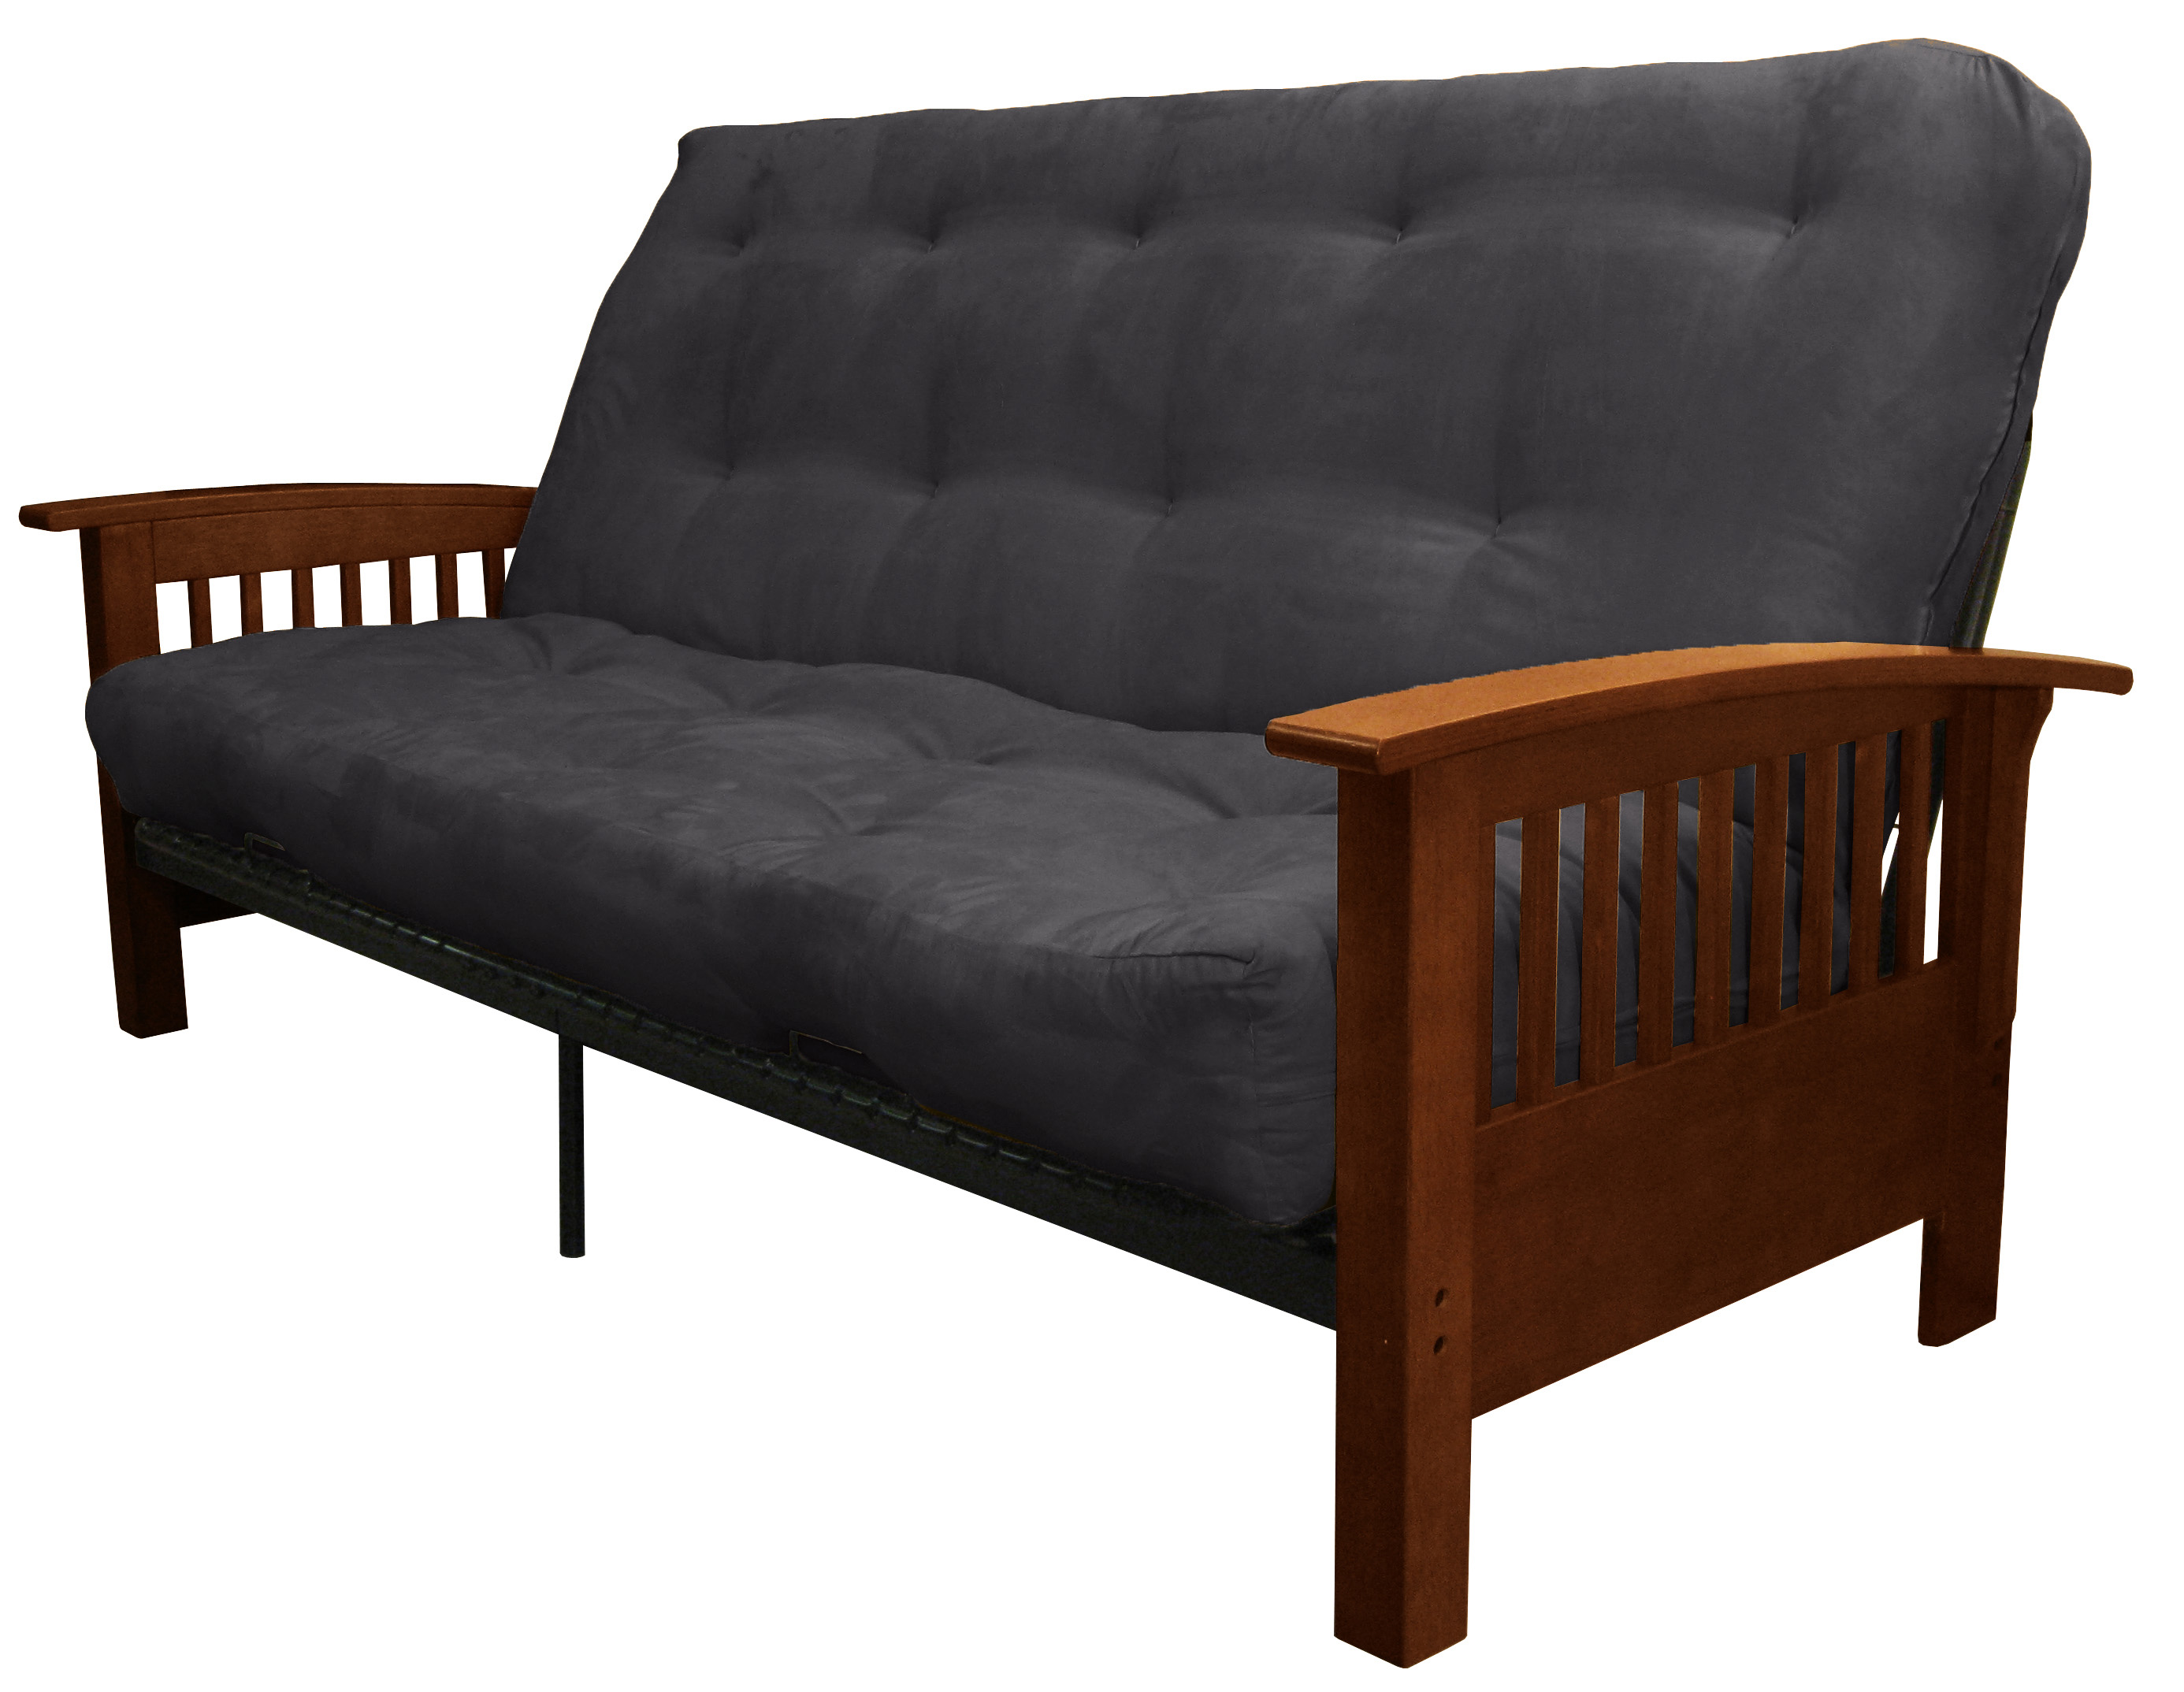 Morris Mission Style True 8 Inch Loft Cotton/Foam Futon Sofa Sleeper Bed,  Queen Size, Walnut Arms, Suede Slate Grey   Walmart.com